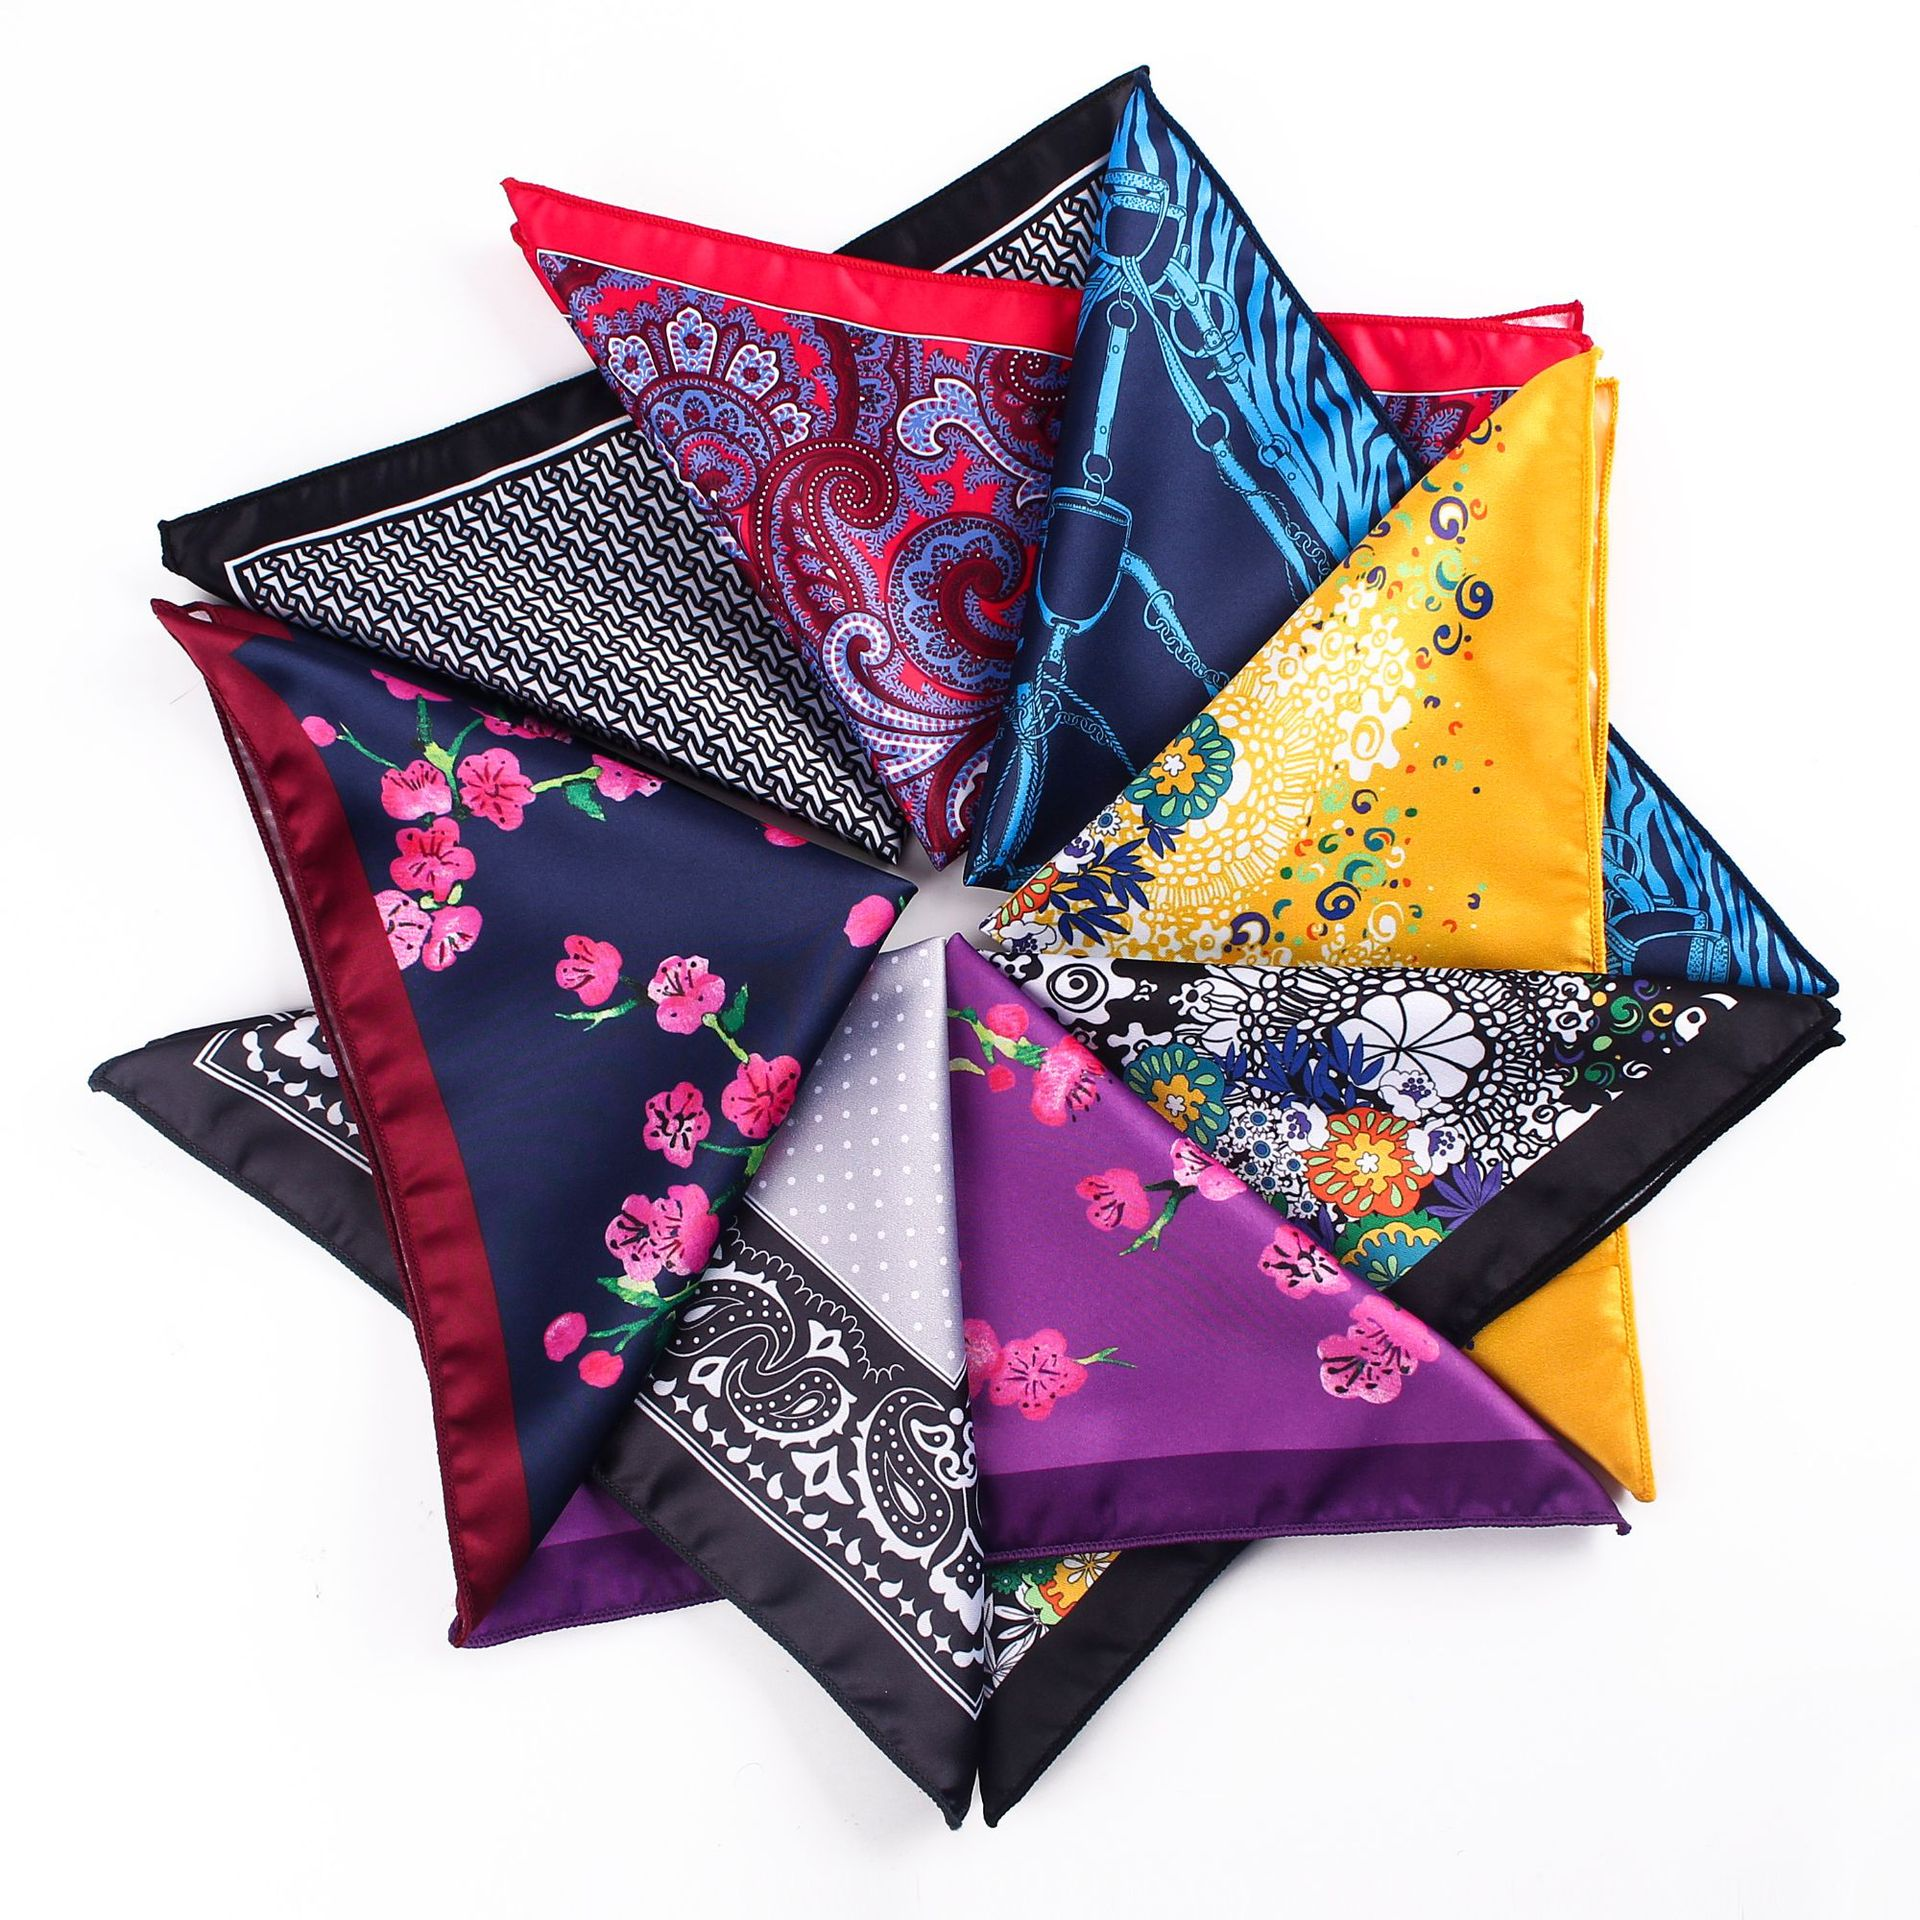 Luxury Mens Handkerchief Silk Accessories Hanky Pocket Squared Handkerchief Pocket Scarf Paisley Polka Dots Party Wedding Prom